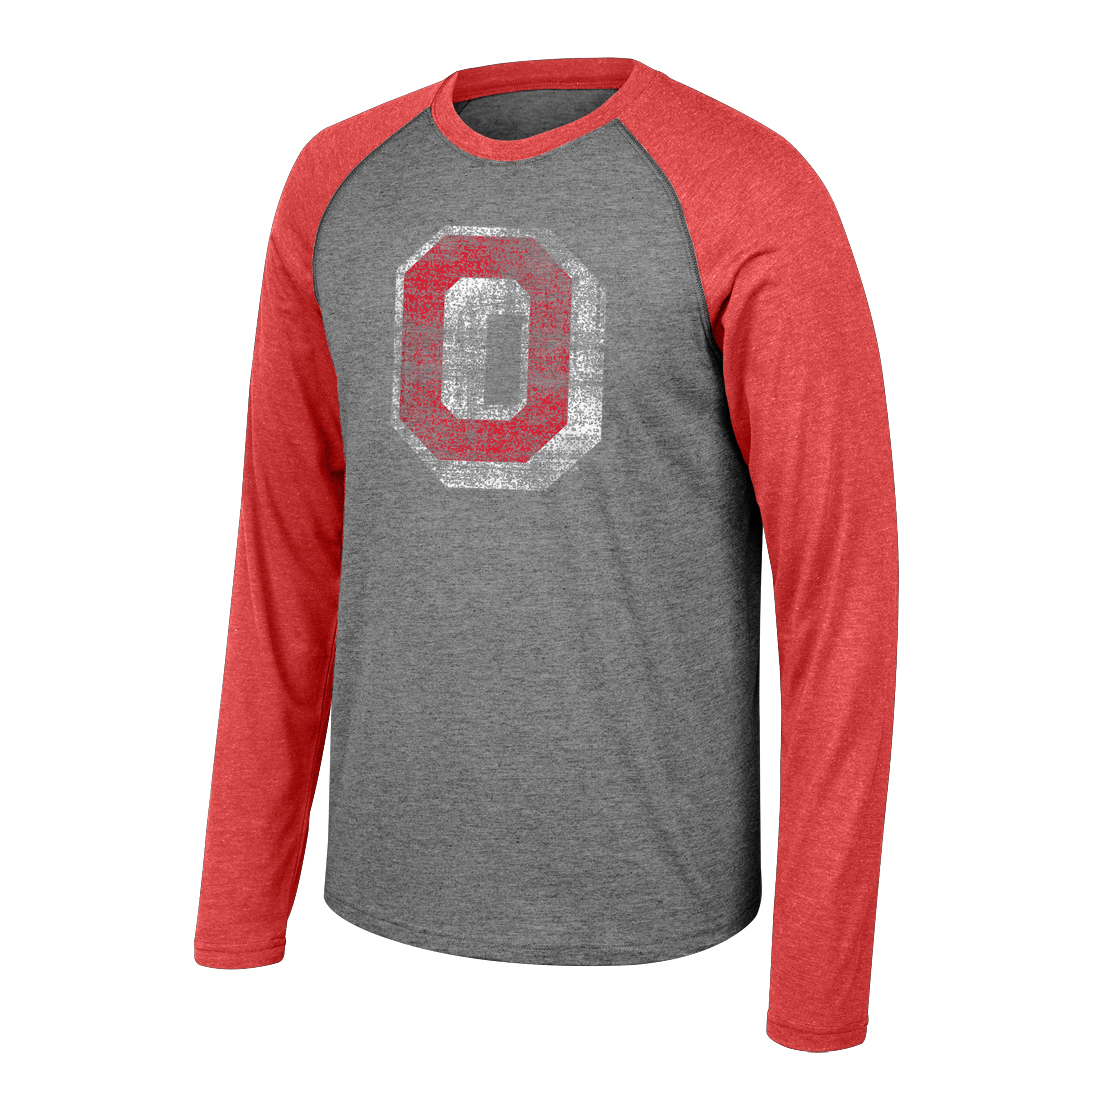 Ohio State Unisex Buckeyes Graphite and Red Long Sleeve Shirt